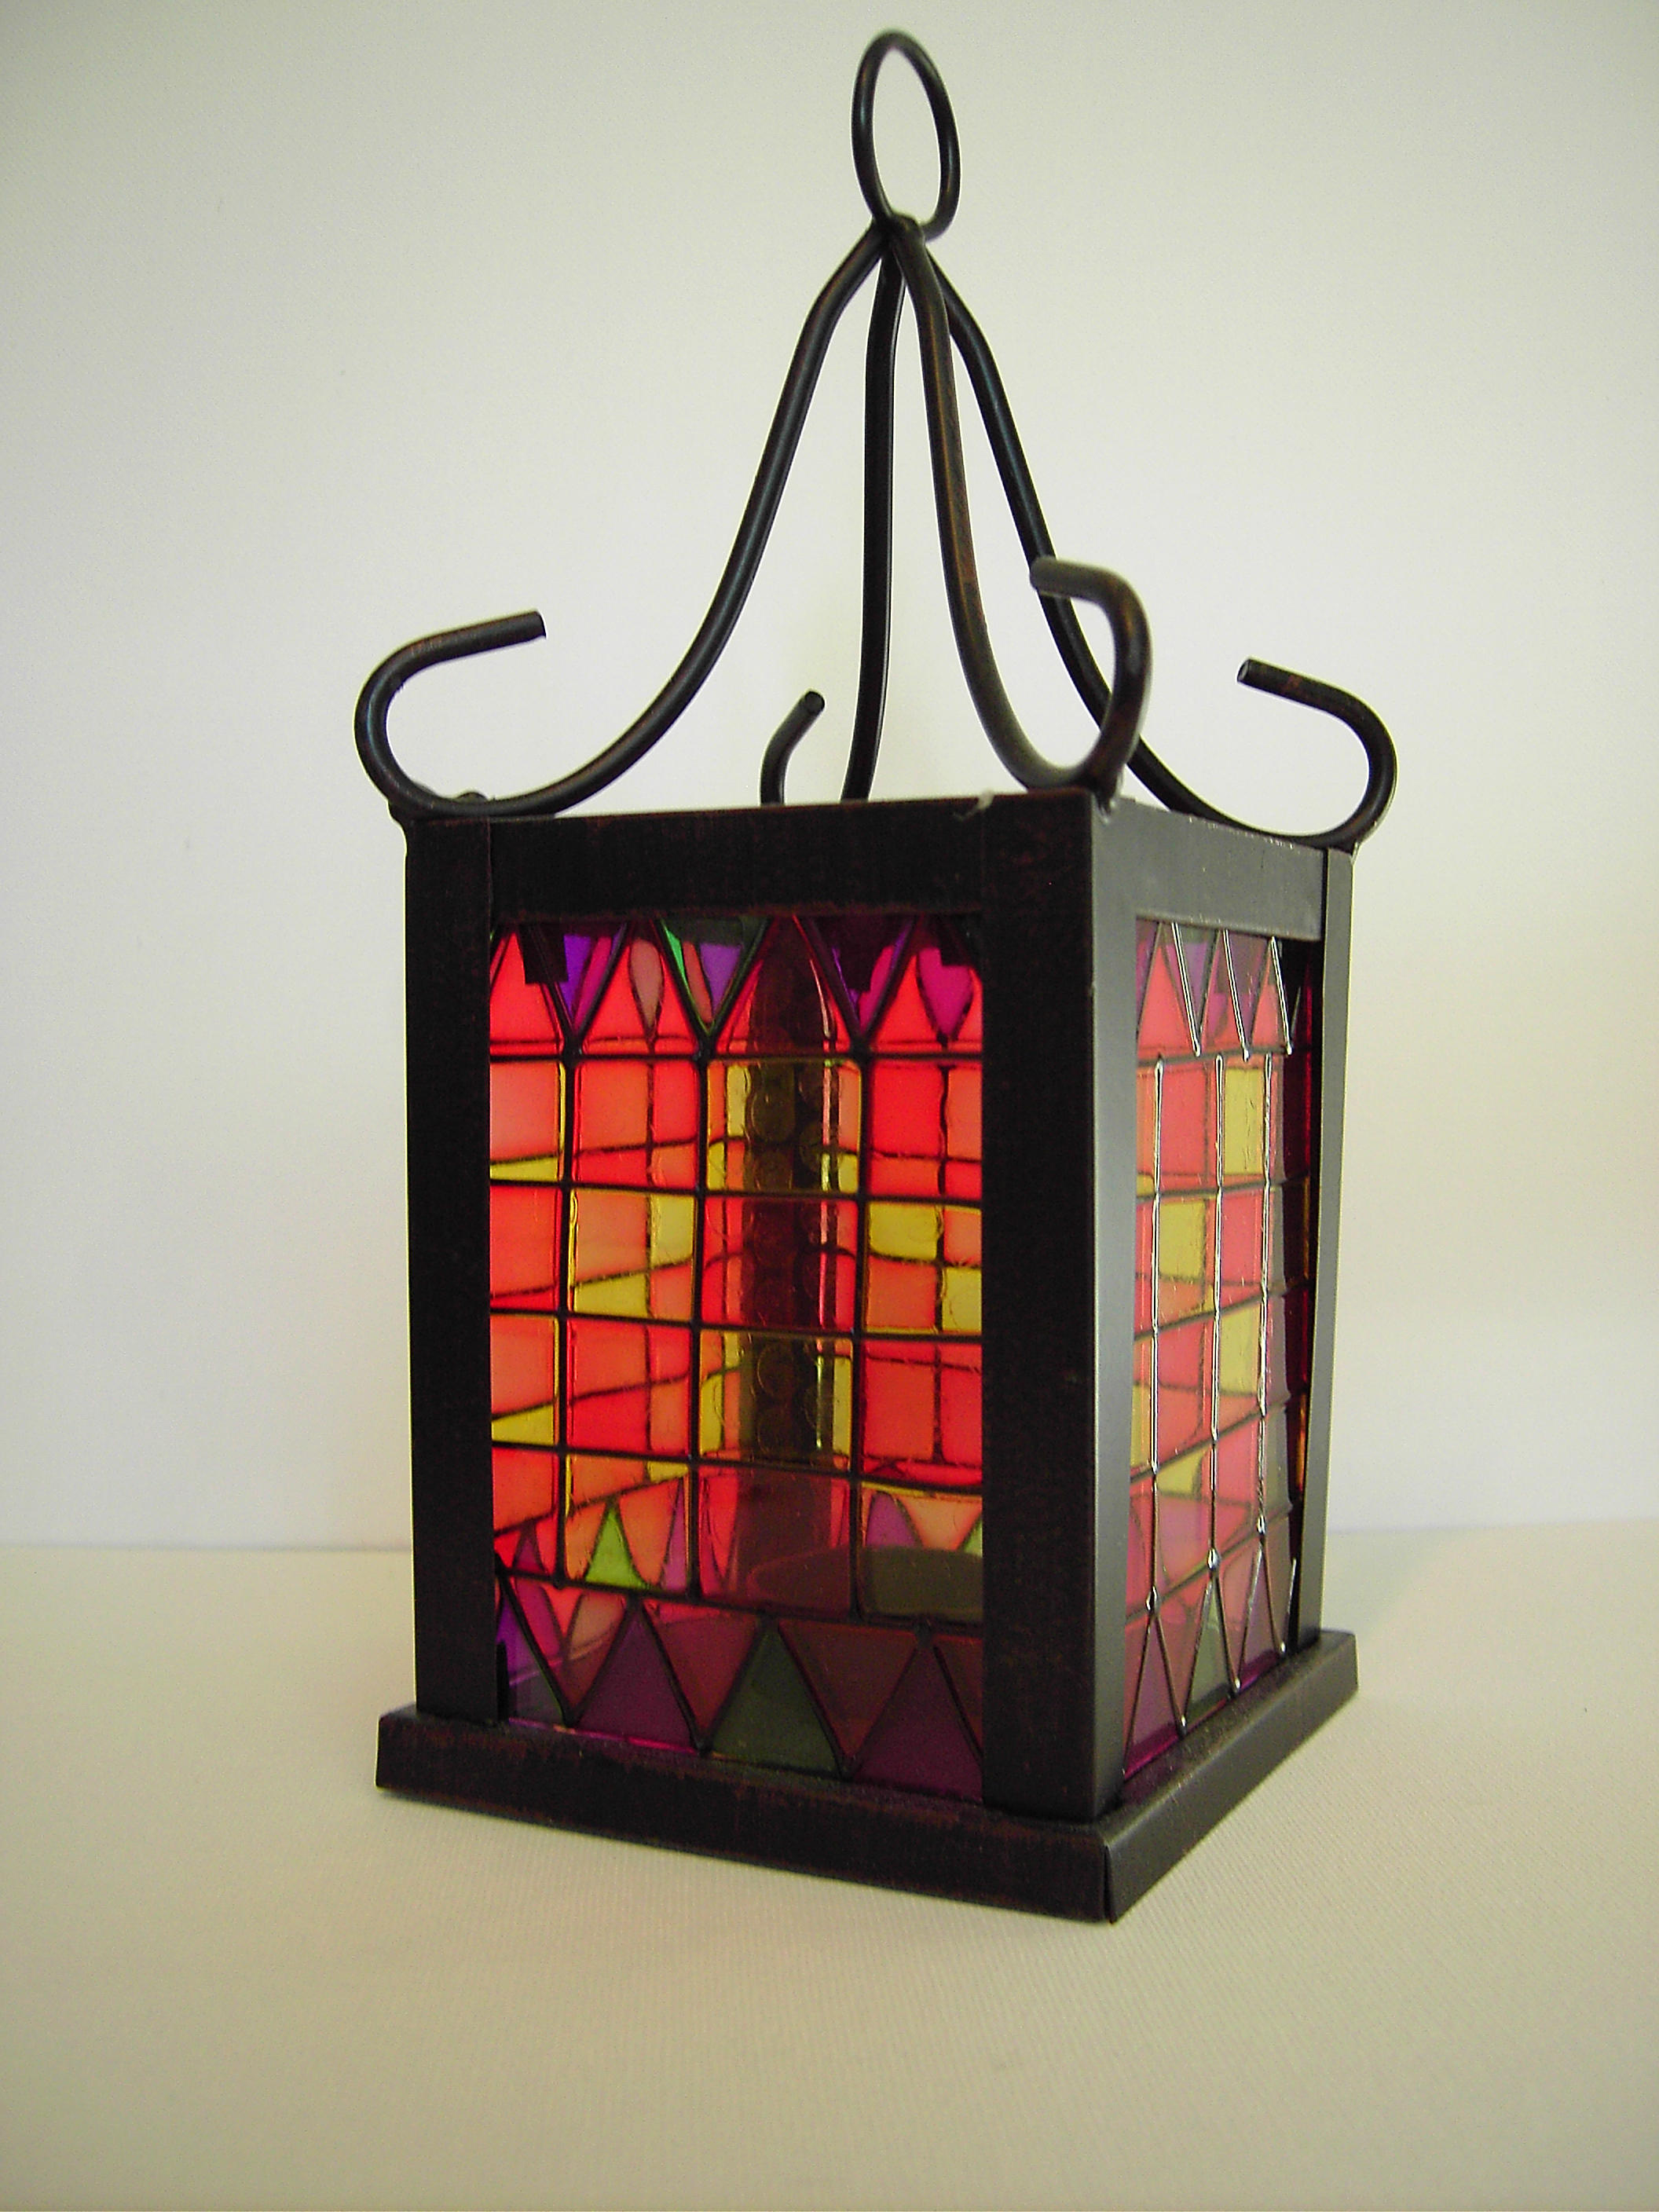 lantern1_by akinna-stock by akinna-stock